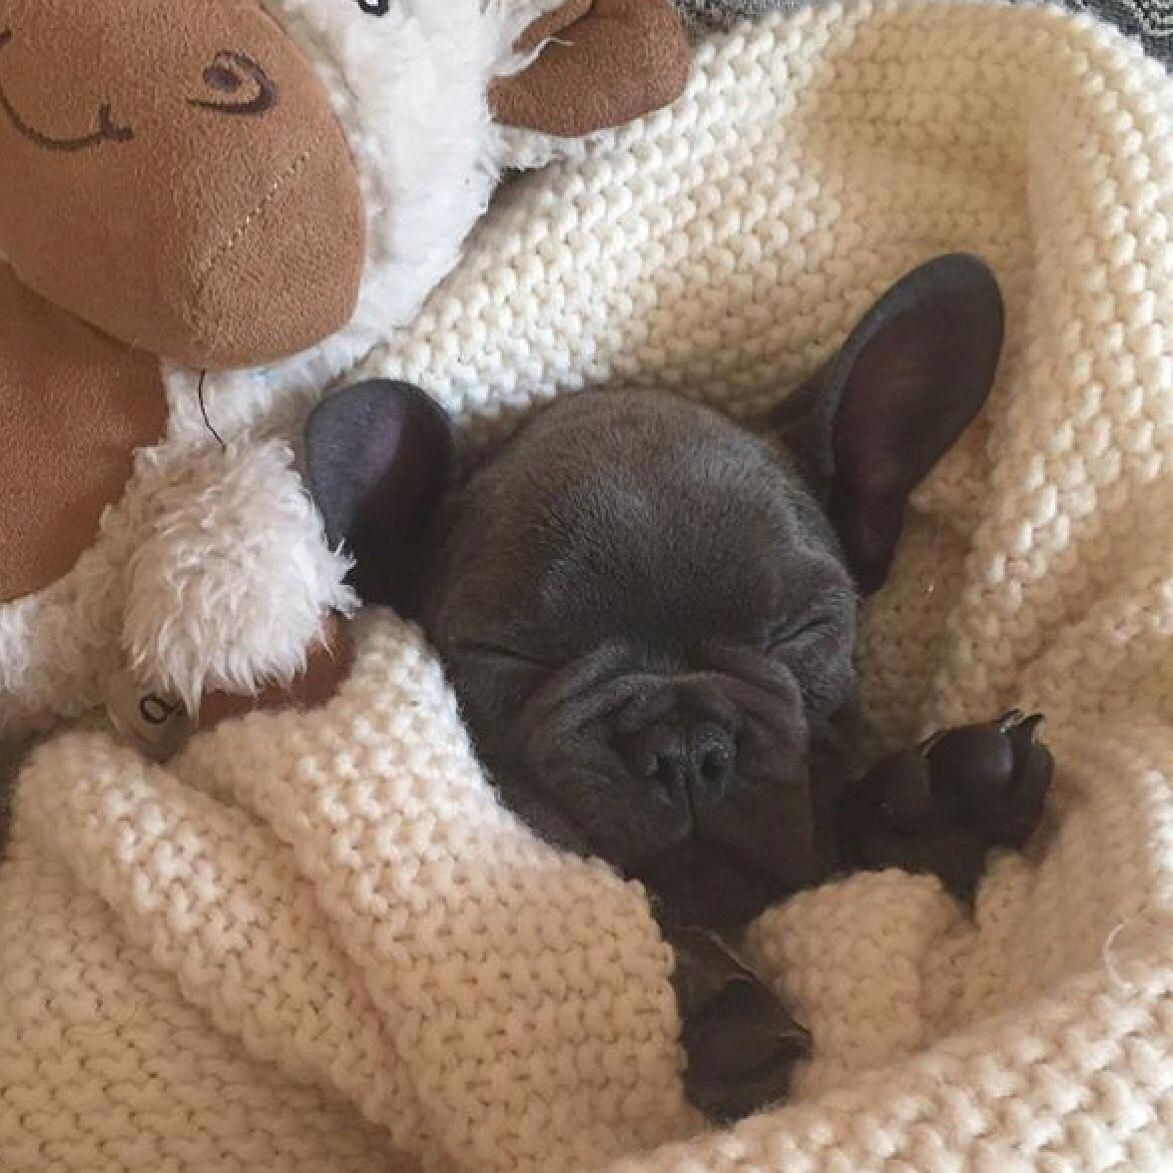 Exceptional Bulldog Puppies Information Is Readily Available On Our Site Have A Look And You Baby French Bulldog Blue French Bulldog Puppies Bulldog Puppies